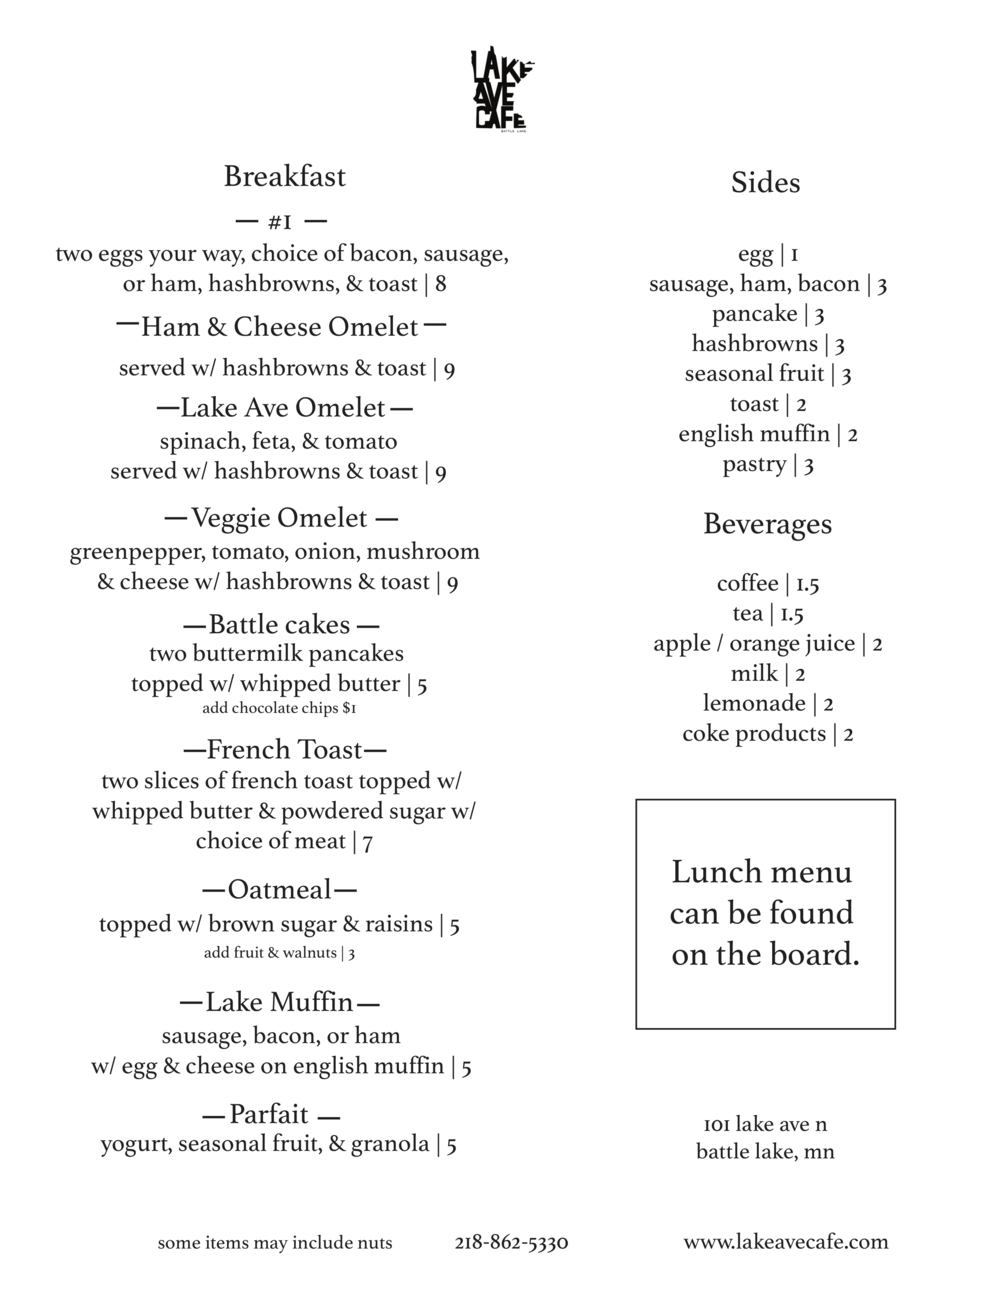 Lake Ave Cafe Menu 2018 copy 2.png